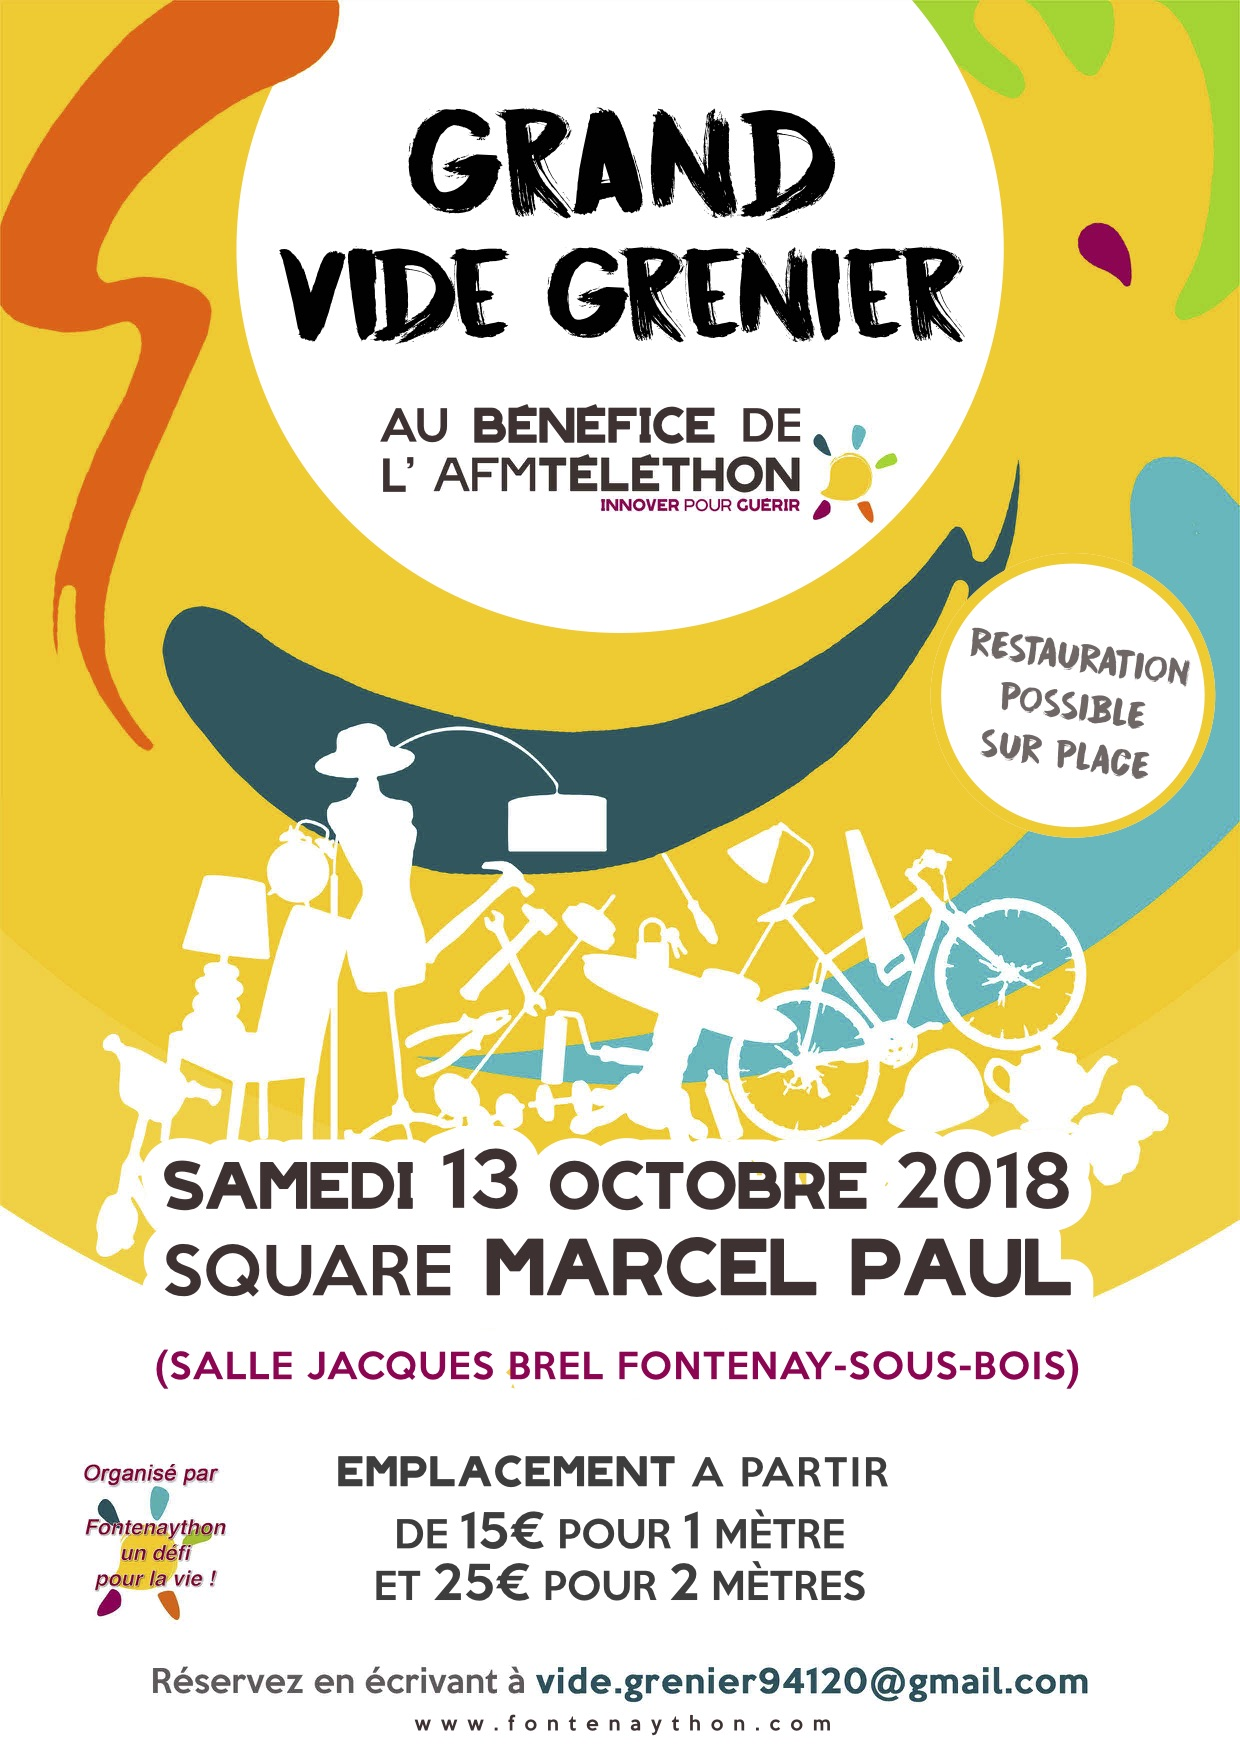 https://static.blog4ever.com/2015/09/808507/Affiche-Vide-grenier-A4.jpg